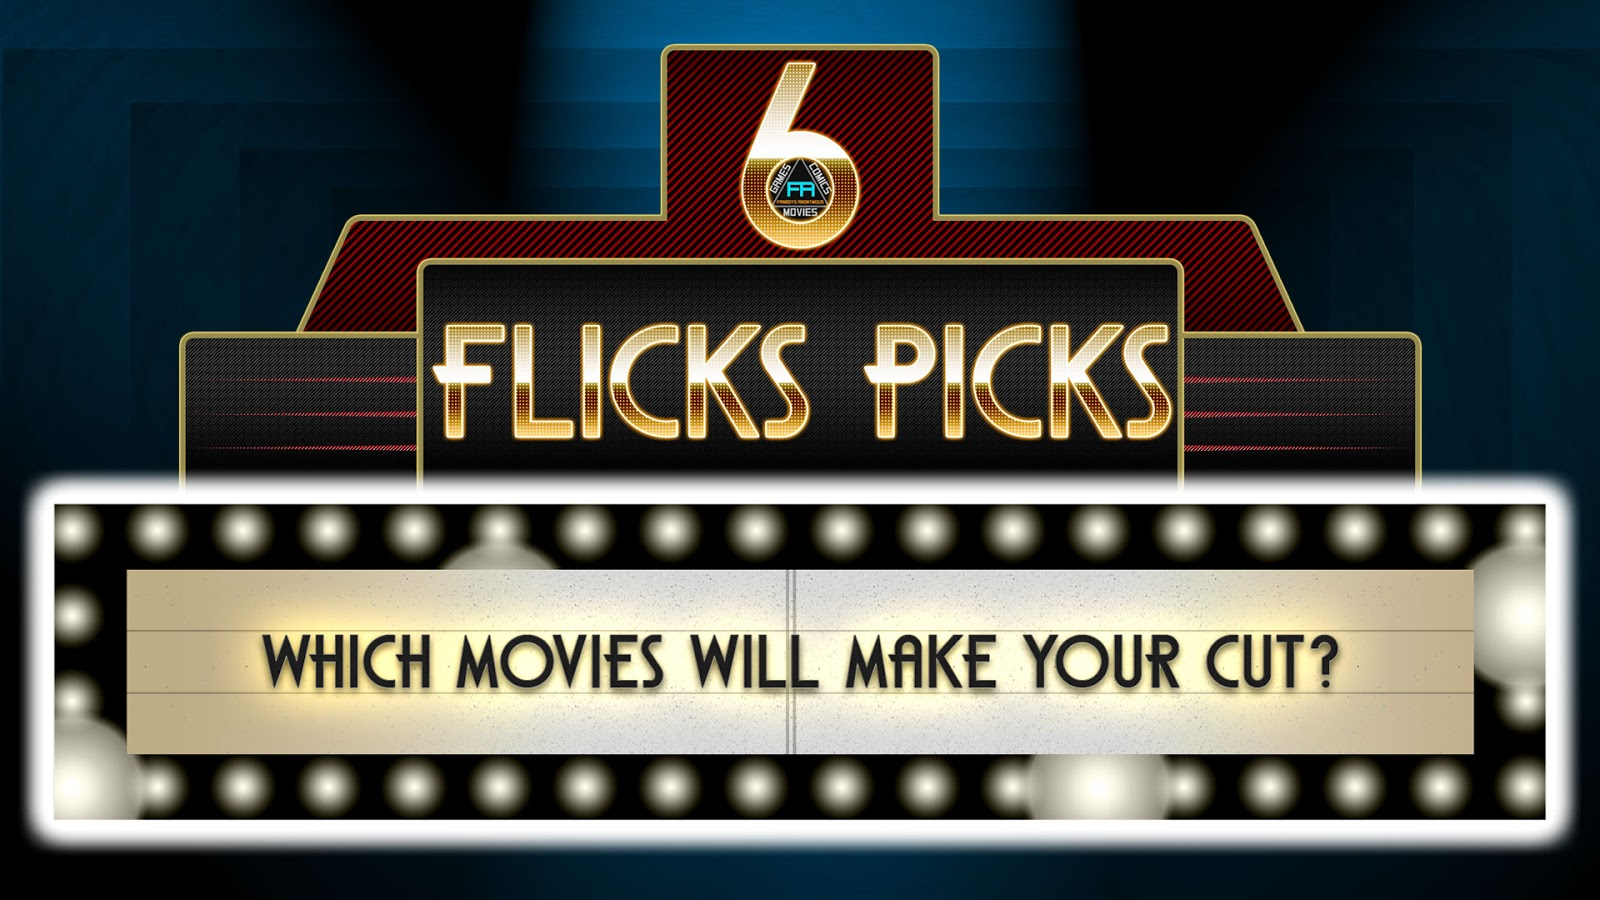 What movies are coming out March 2017 6 Flicks Picks